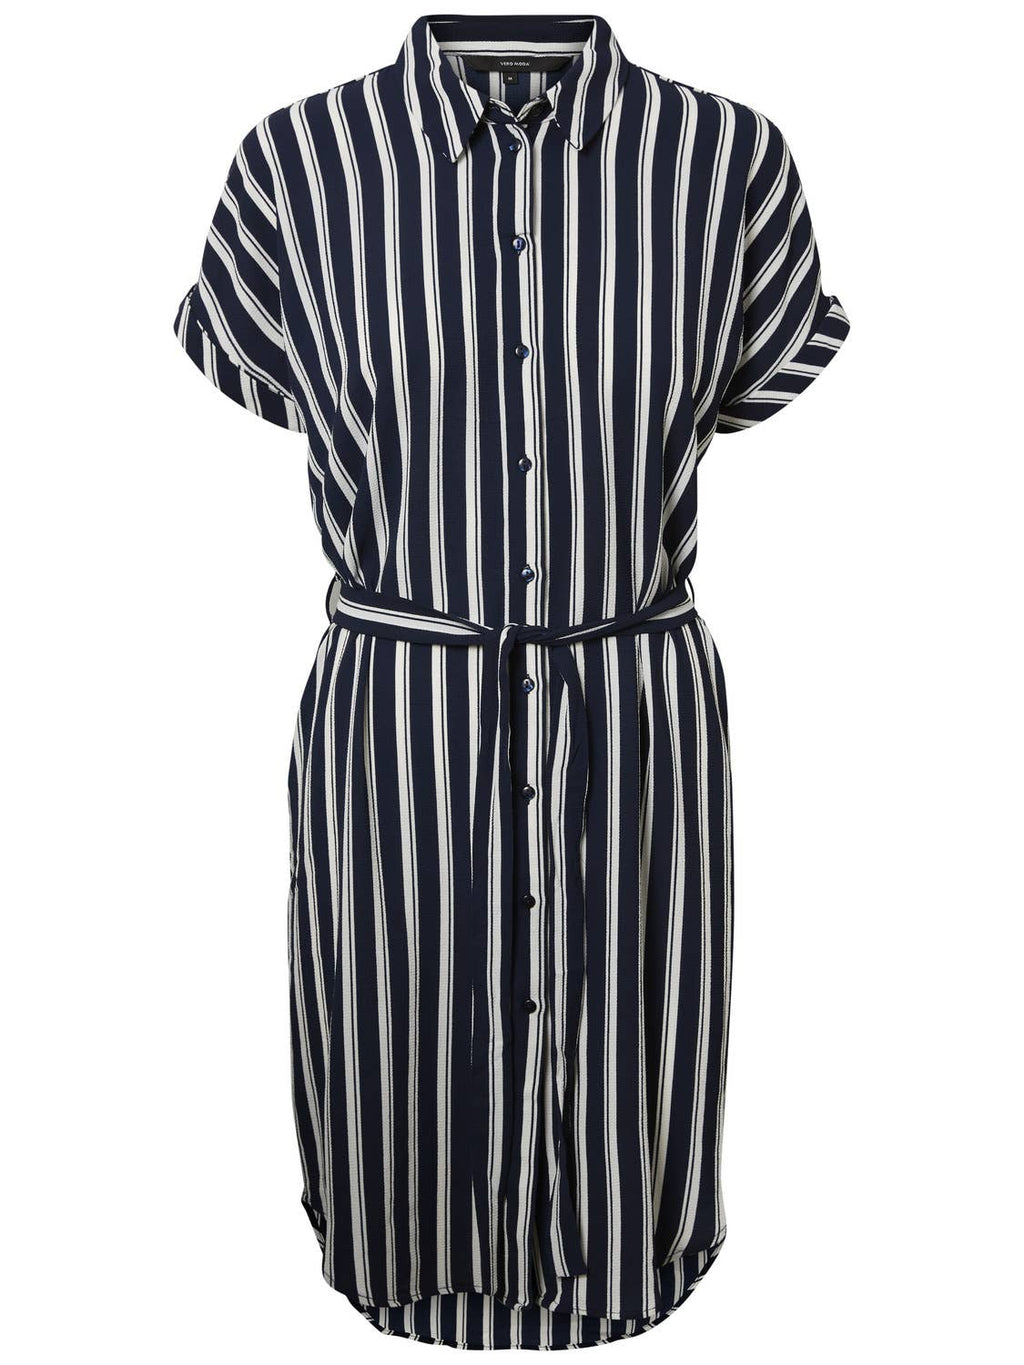 VERO MODA - VMSASHA SHIRT SS DRESS